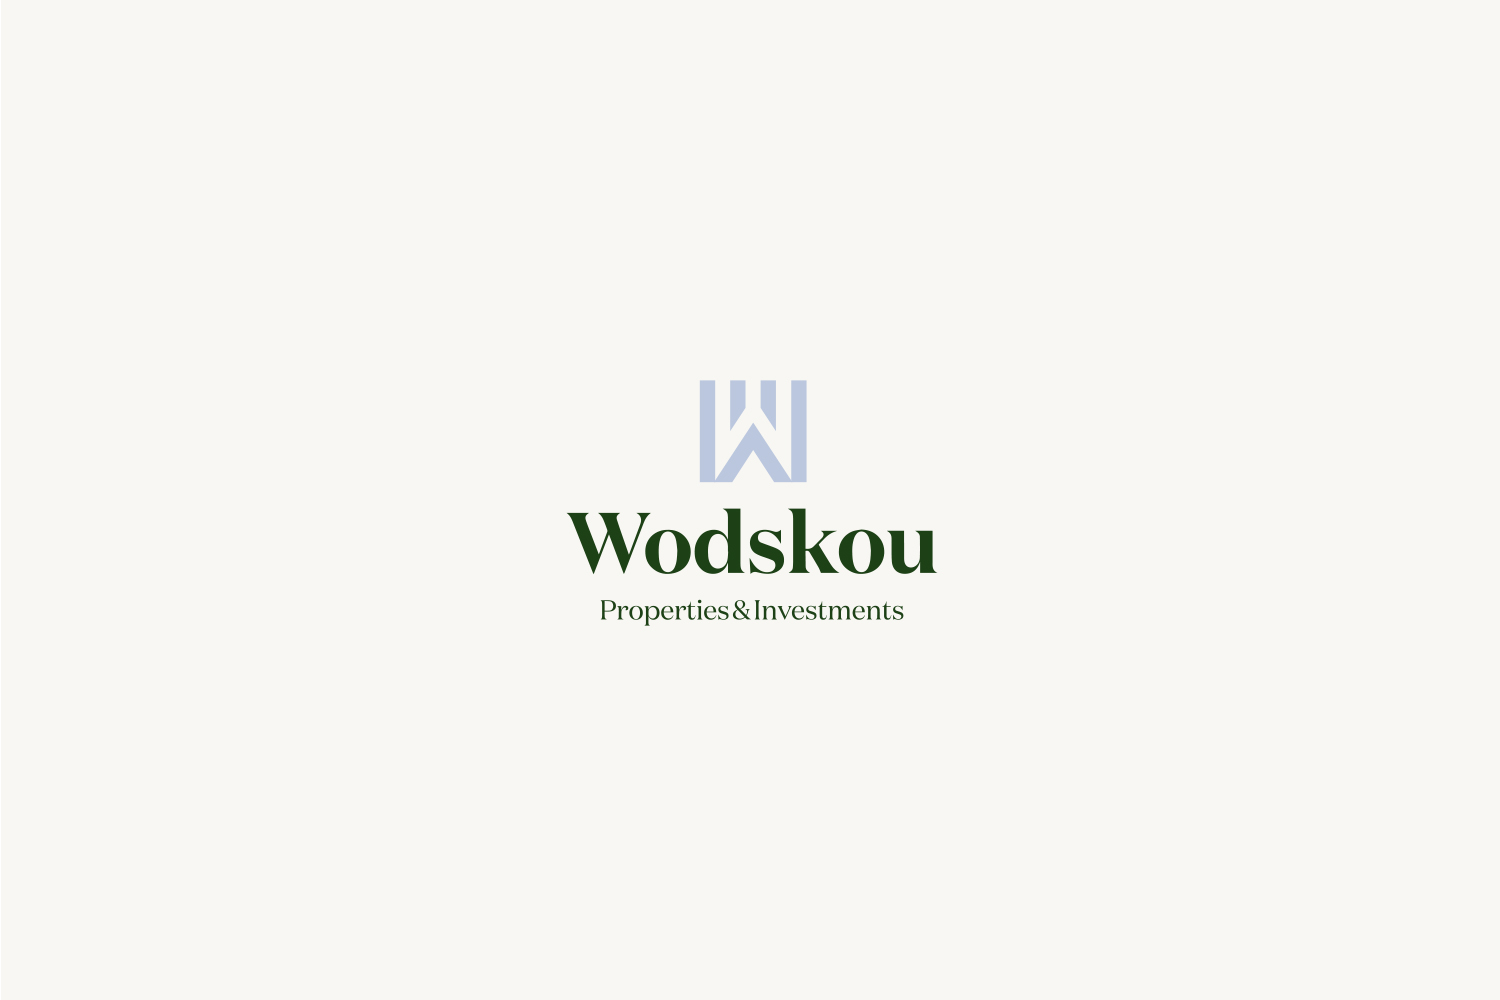 23.Becca_Allen_Wodskow_Property_and_Investments_Logo.jpg